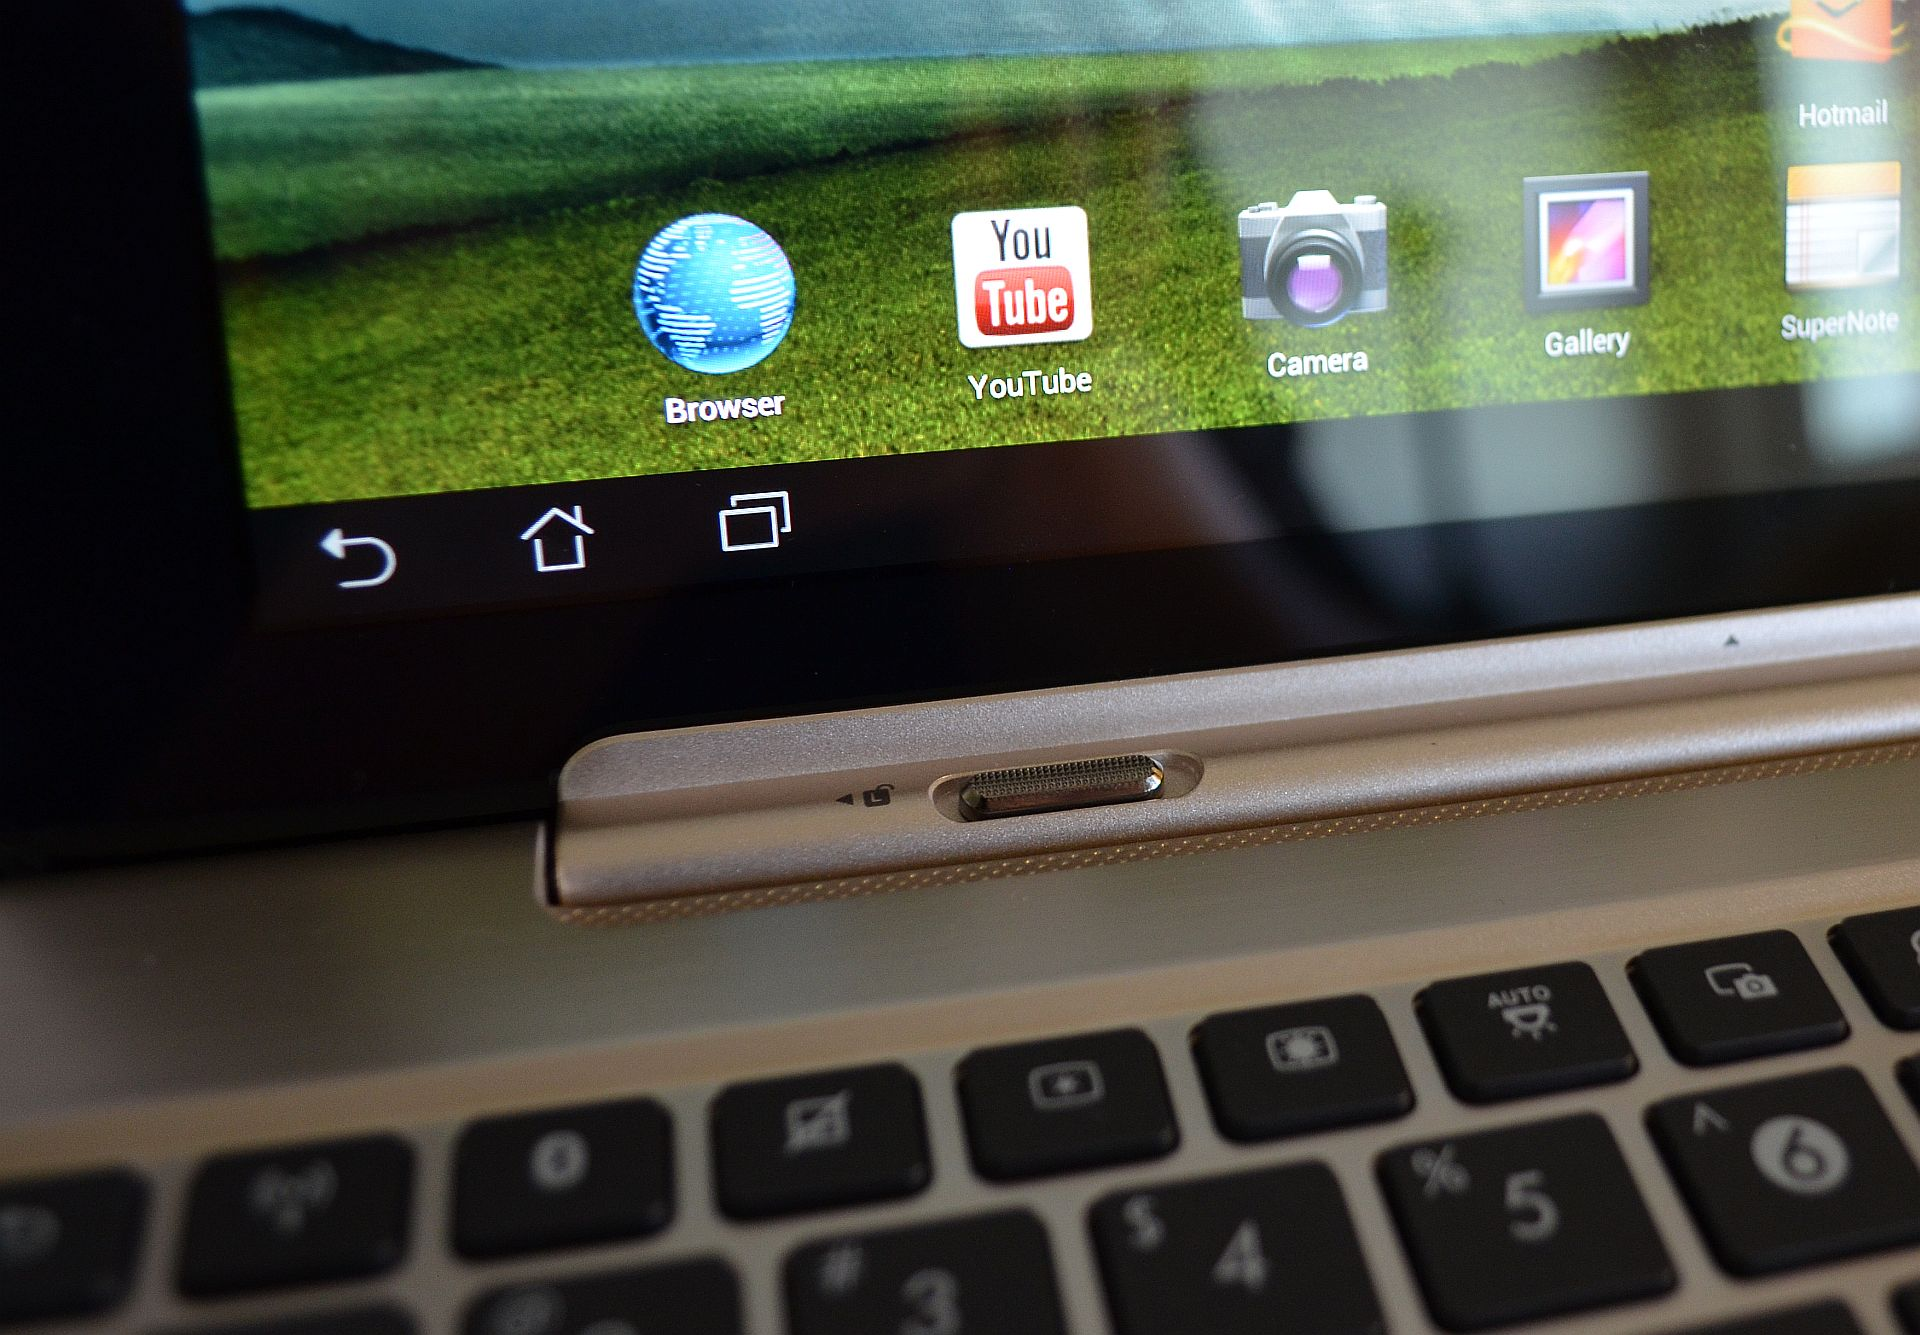 ASUS Transformer Infinity – Noul rege al tabletelor Android [REVIEW]